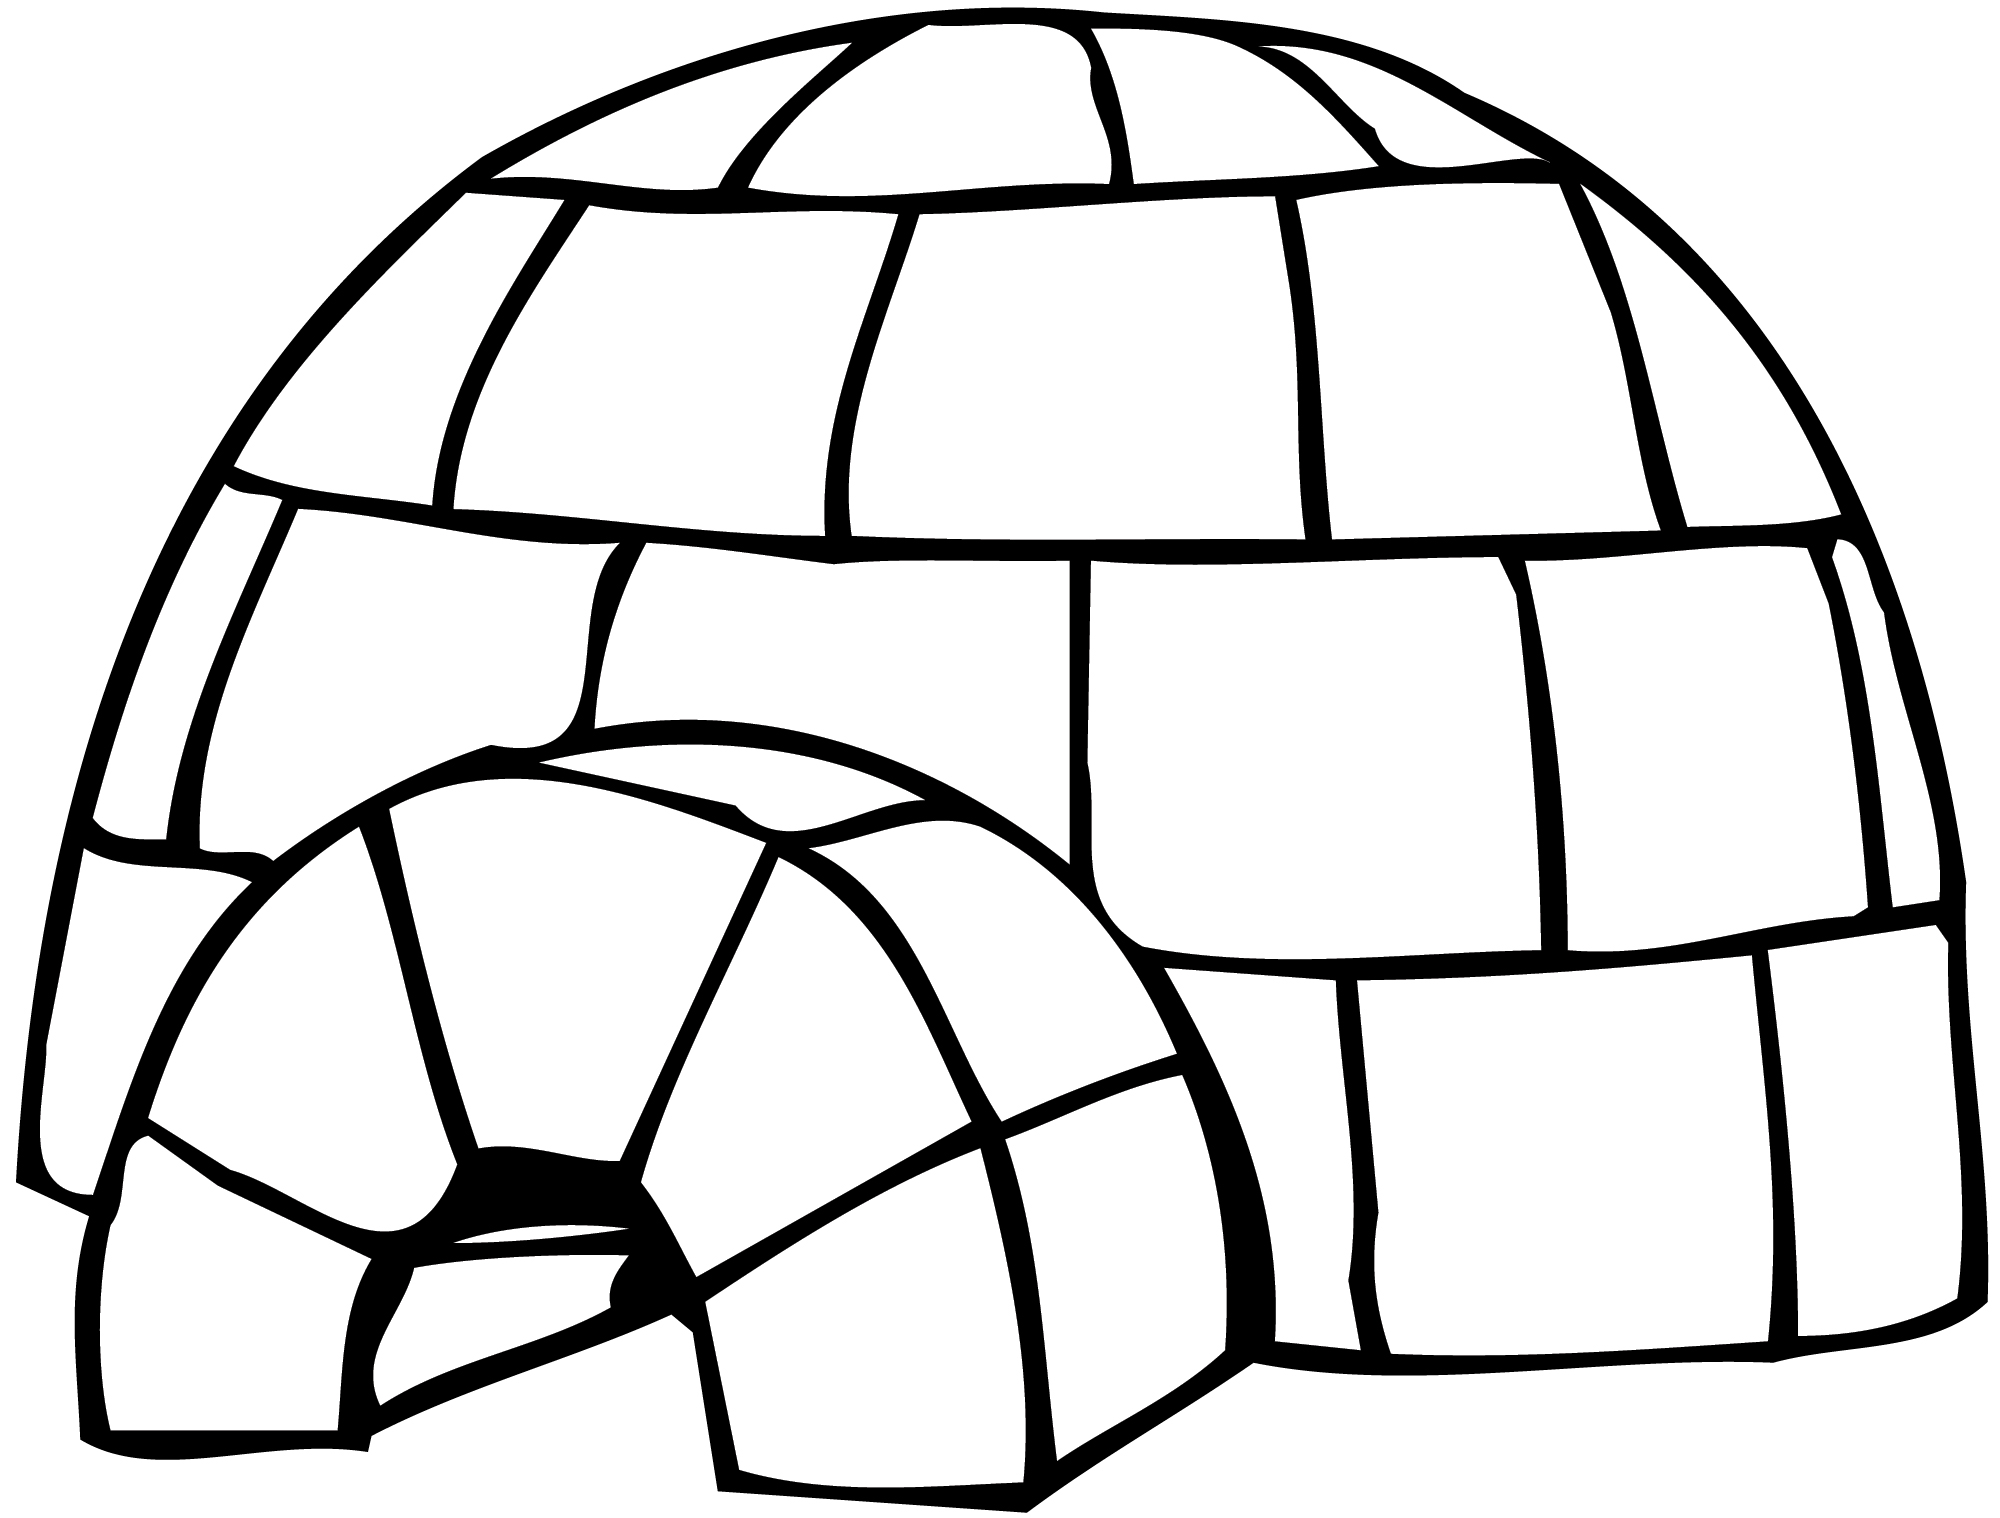 Clipart igloo image transparent stock Free Igloo Cliparts, Download Free Clip Art, Free Clip Art on ... image transparent stock